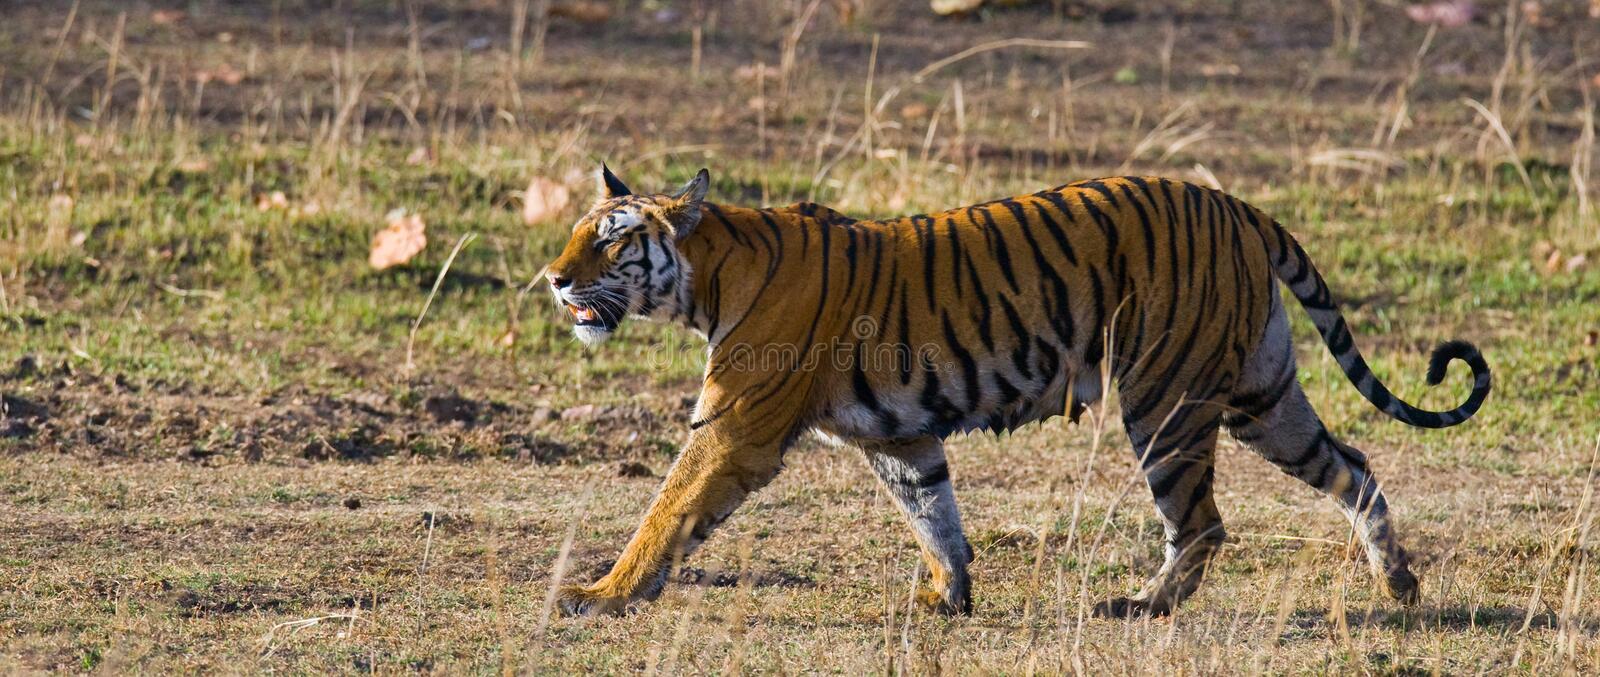 Wild tiger walking on grass in the jungle. India. Bandhavgarh National Park. Madhya Pradesh. An excellent illustration stock image